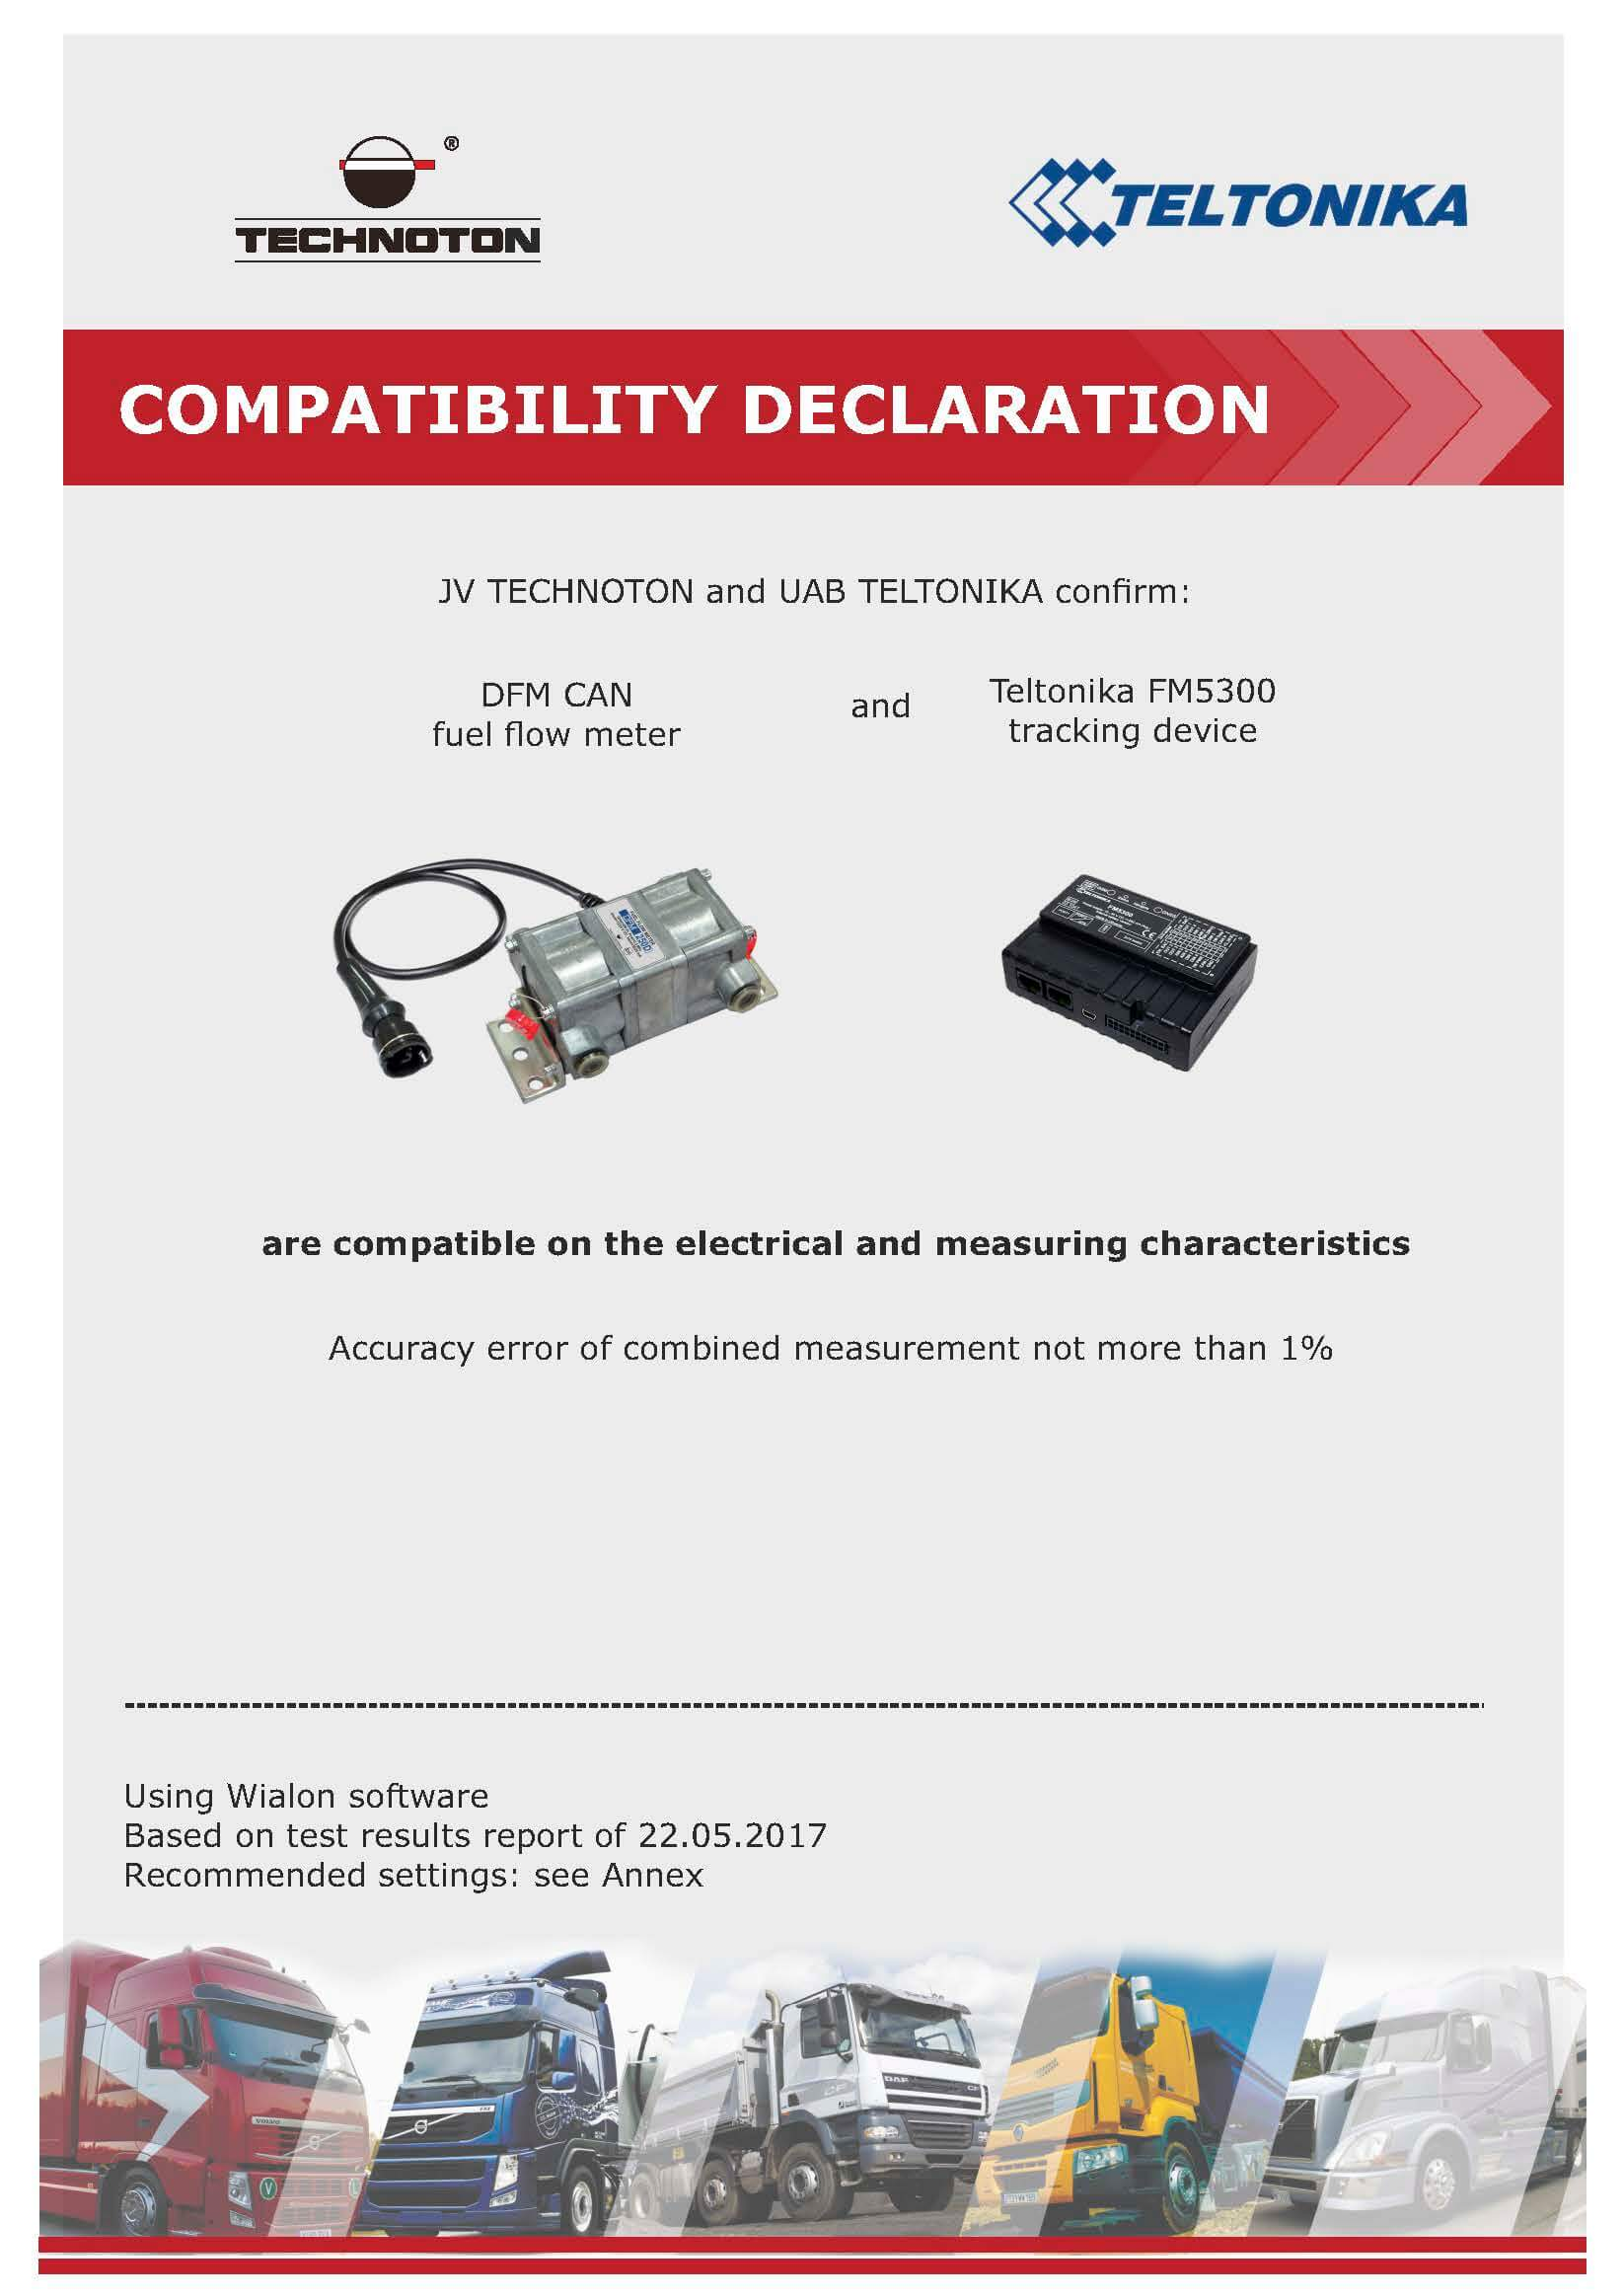 DFM CAN and Teltonica FMS5300 are compatible